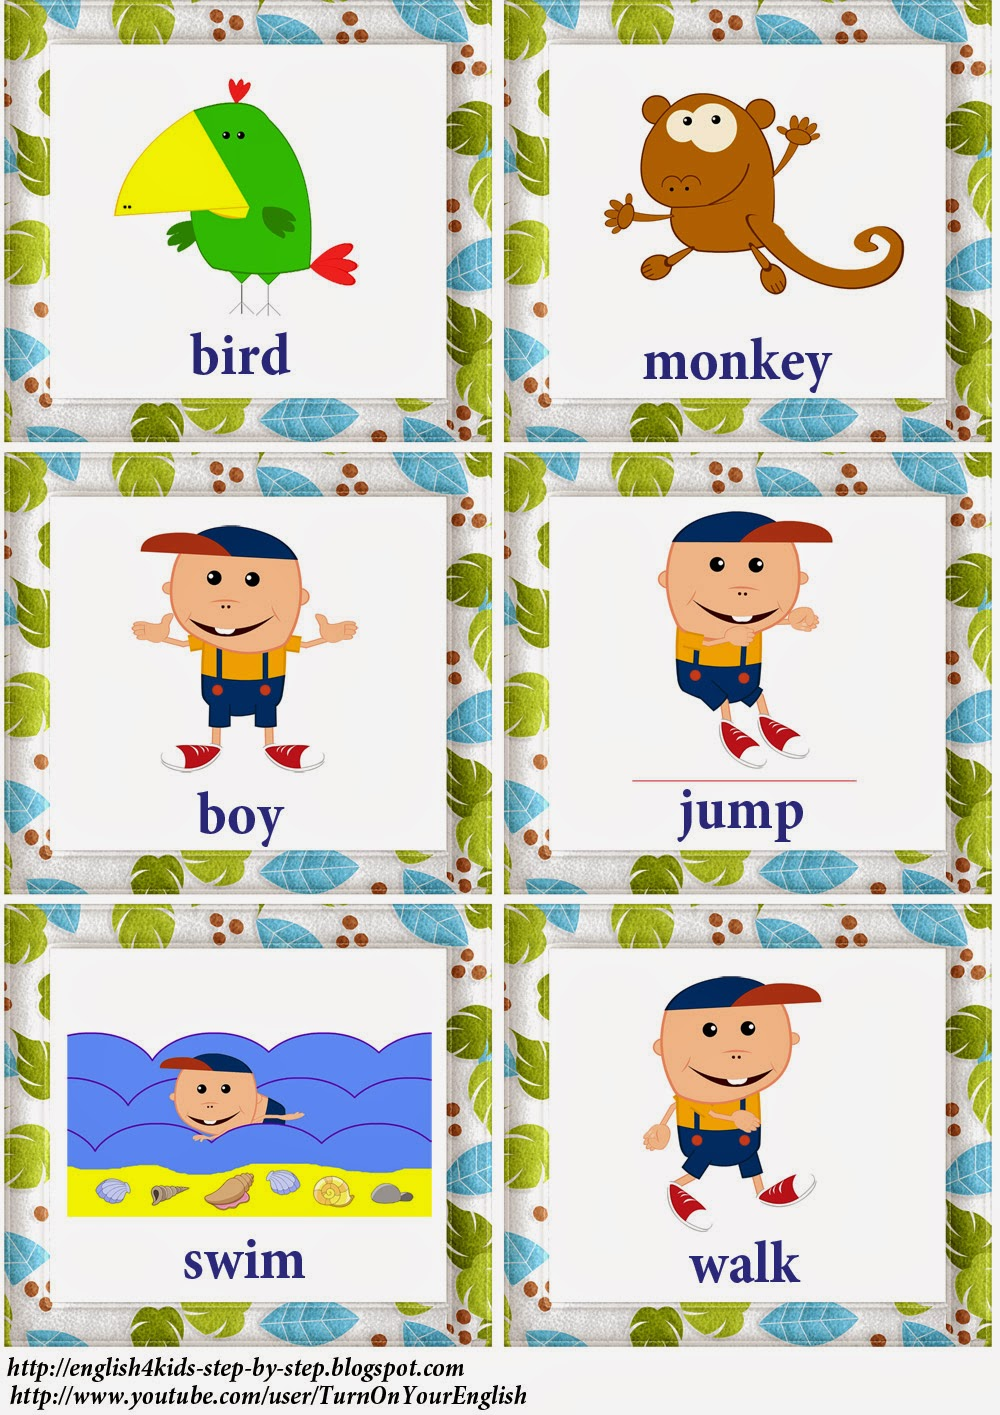 jungle animals action verbs flashcards - Action Berbs